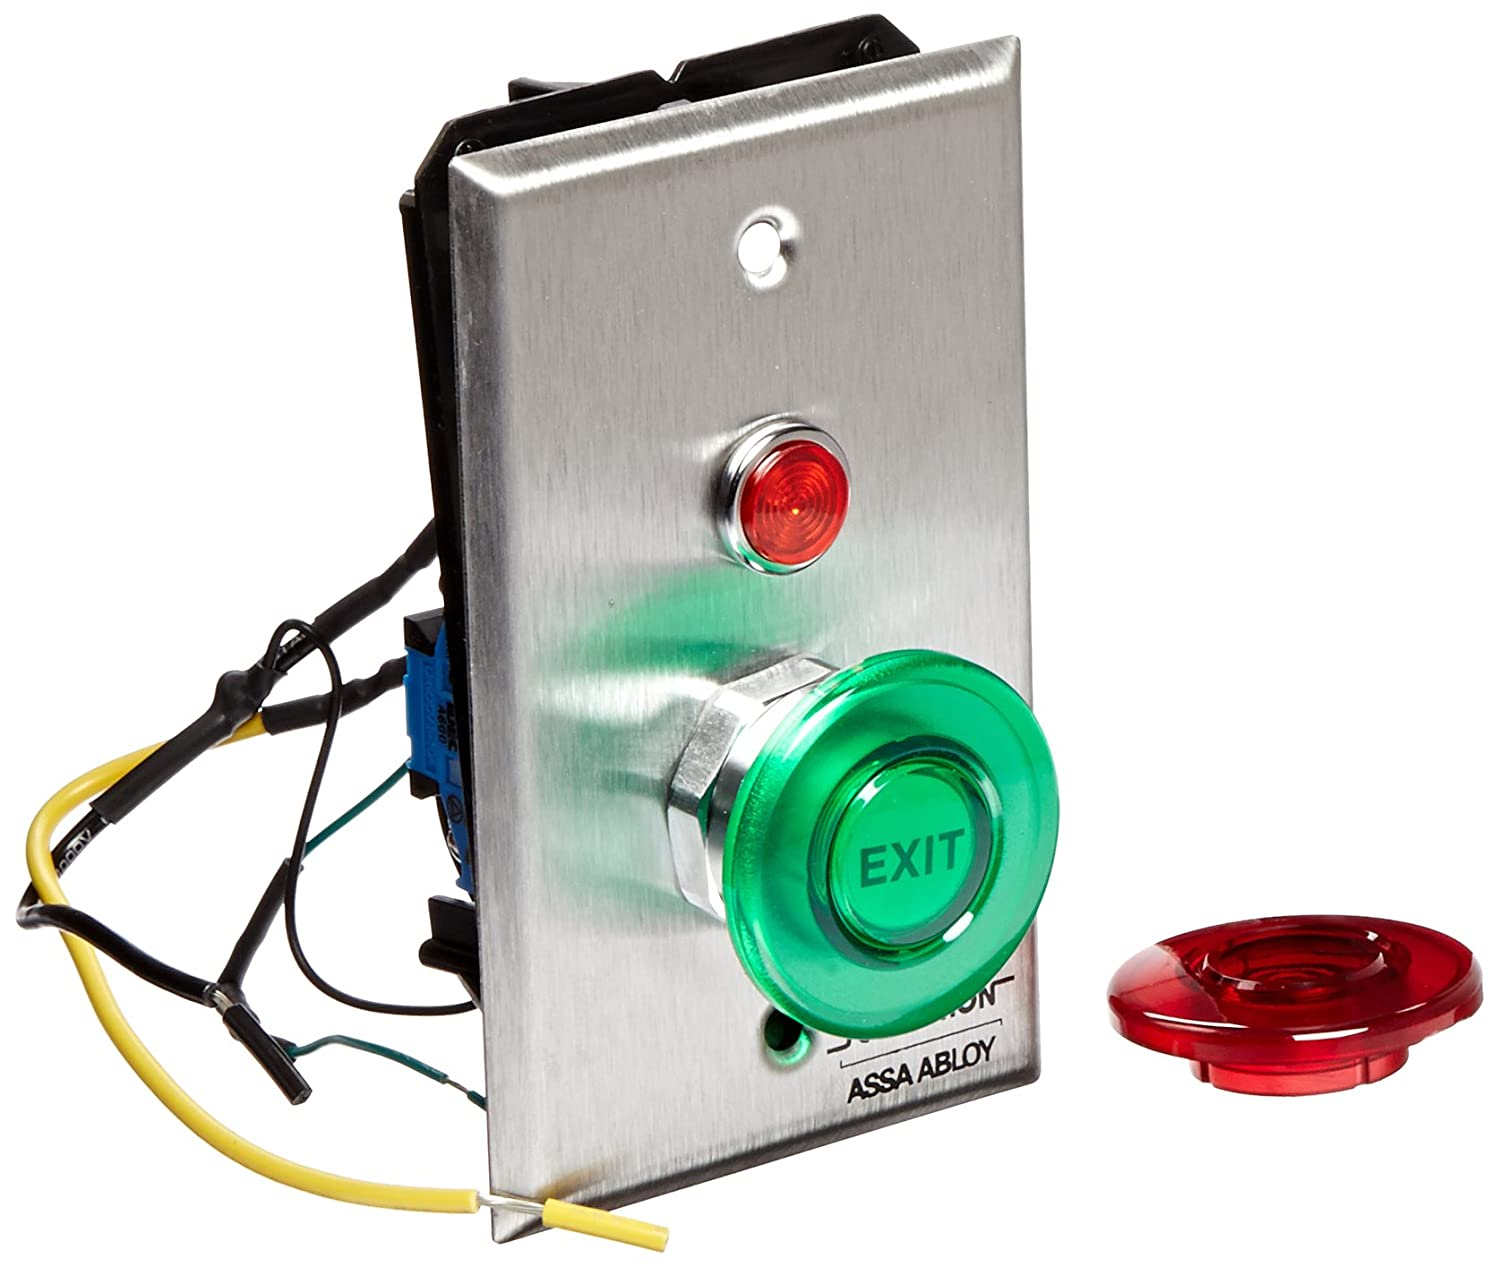 7Amps 1.5 Round Momentary 1.5 Round Momentary Securitron Magnalock Corporation PB DPST Securitron Single Gang Momentary Push Button